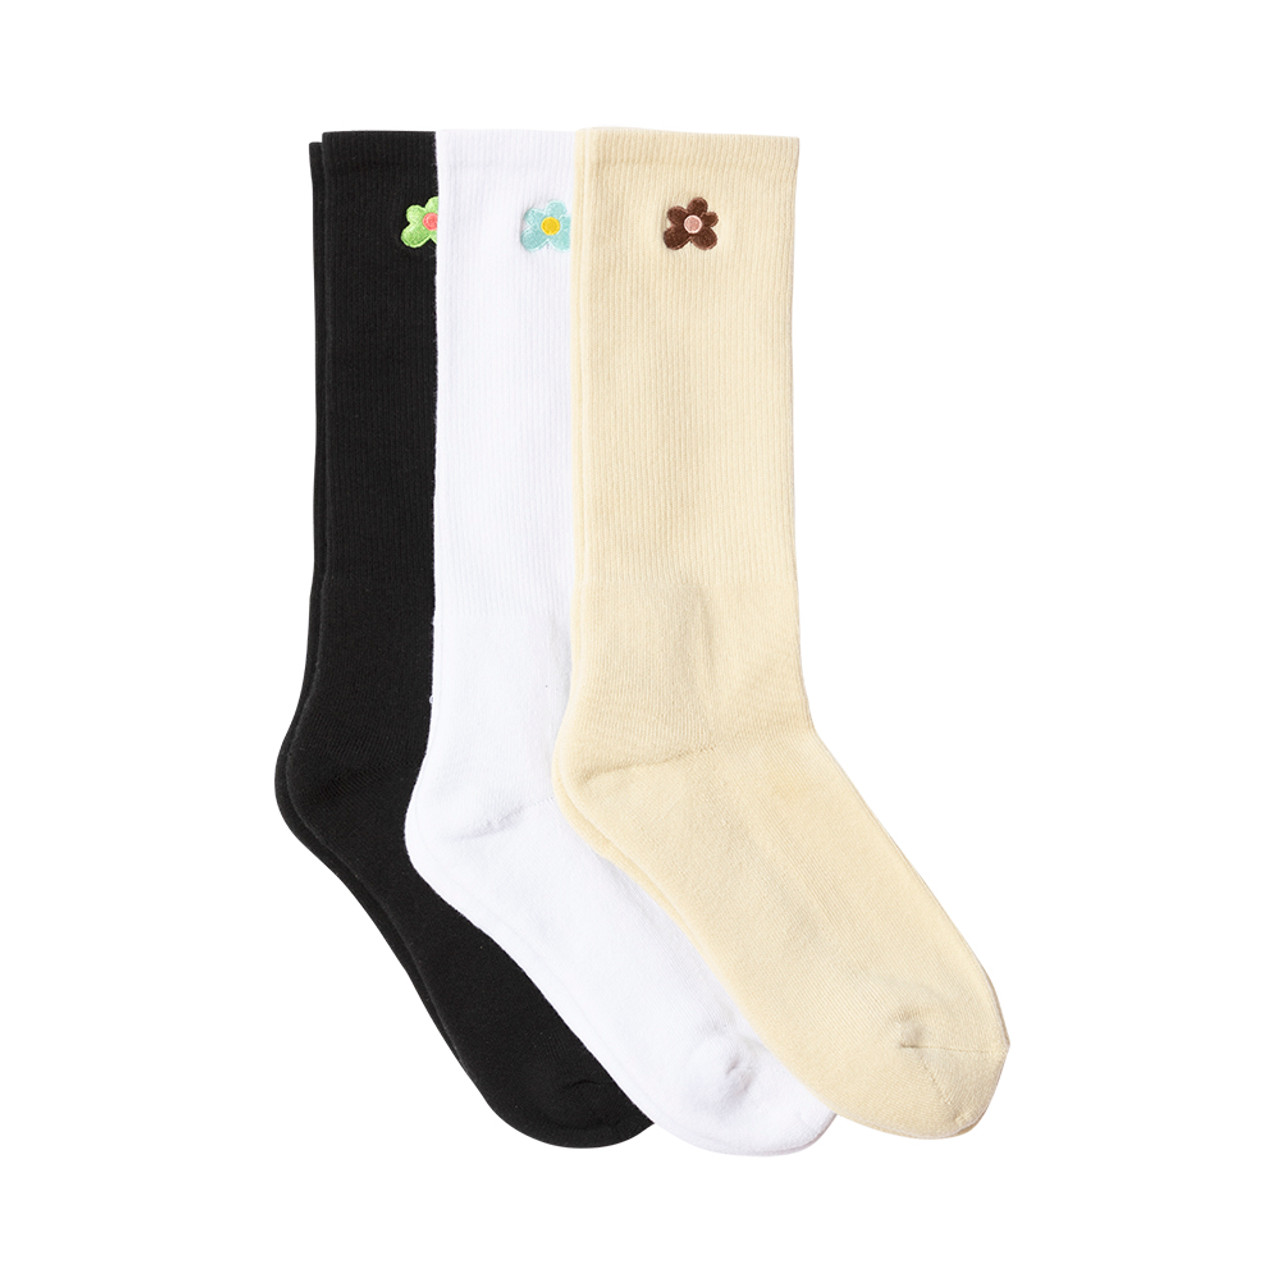 36067acb79f9 LE FLEUR DRESS SOCKS 3PK - MULTI by GOLF WANG - GOLF WANG